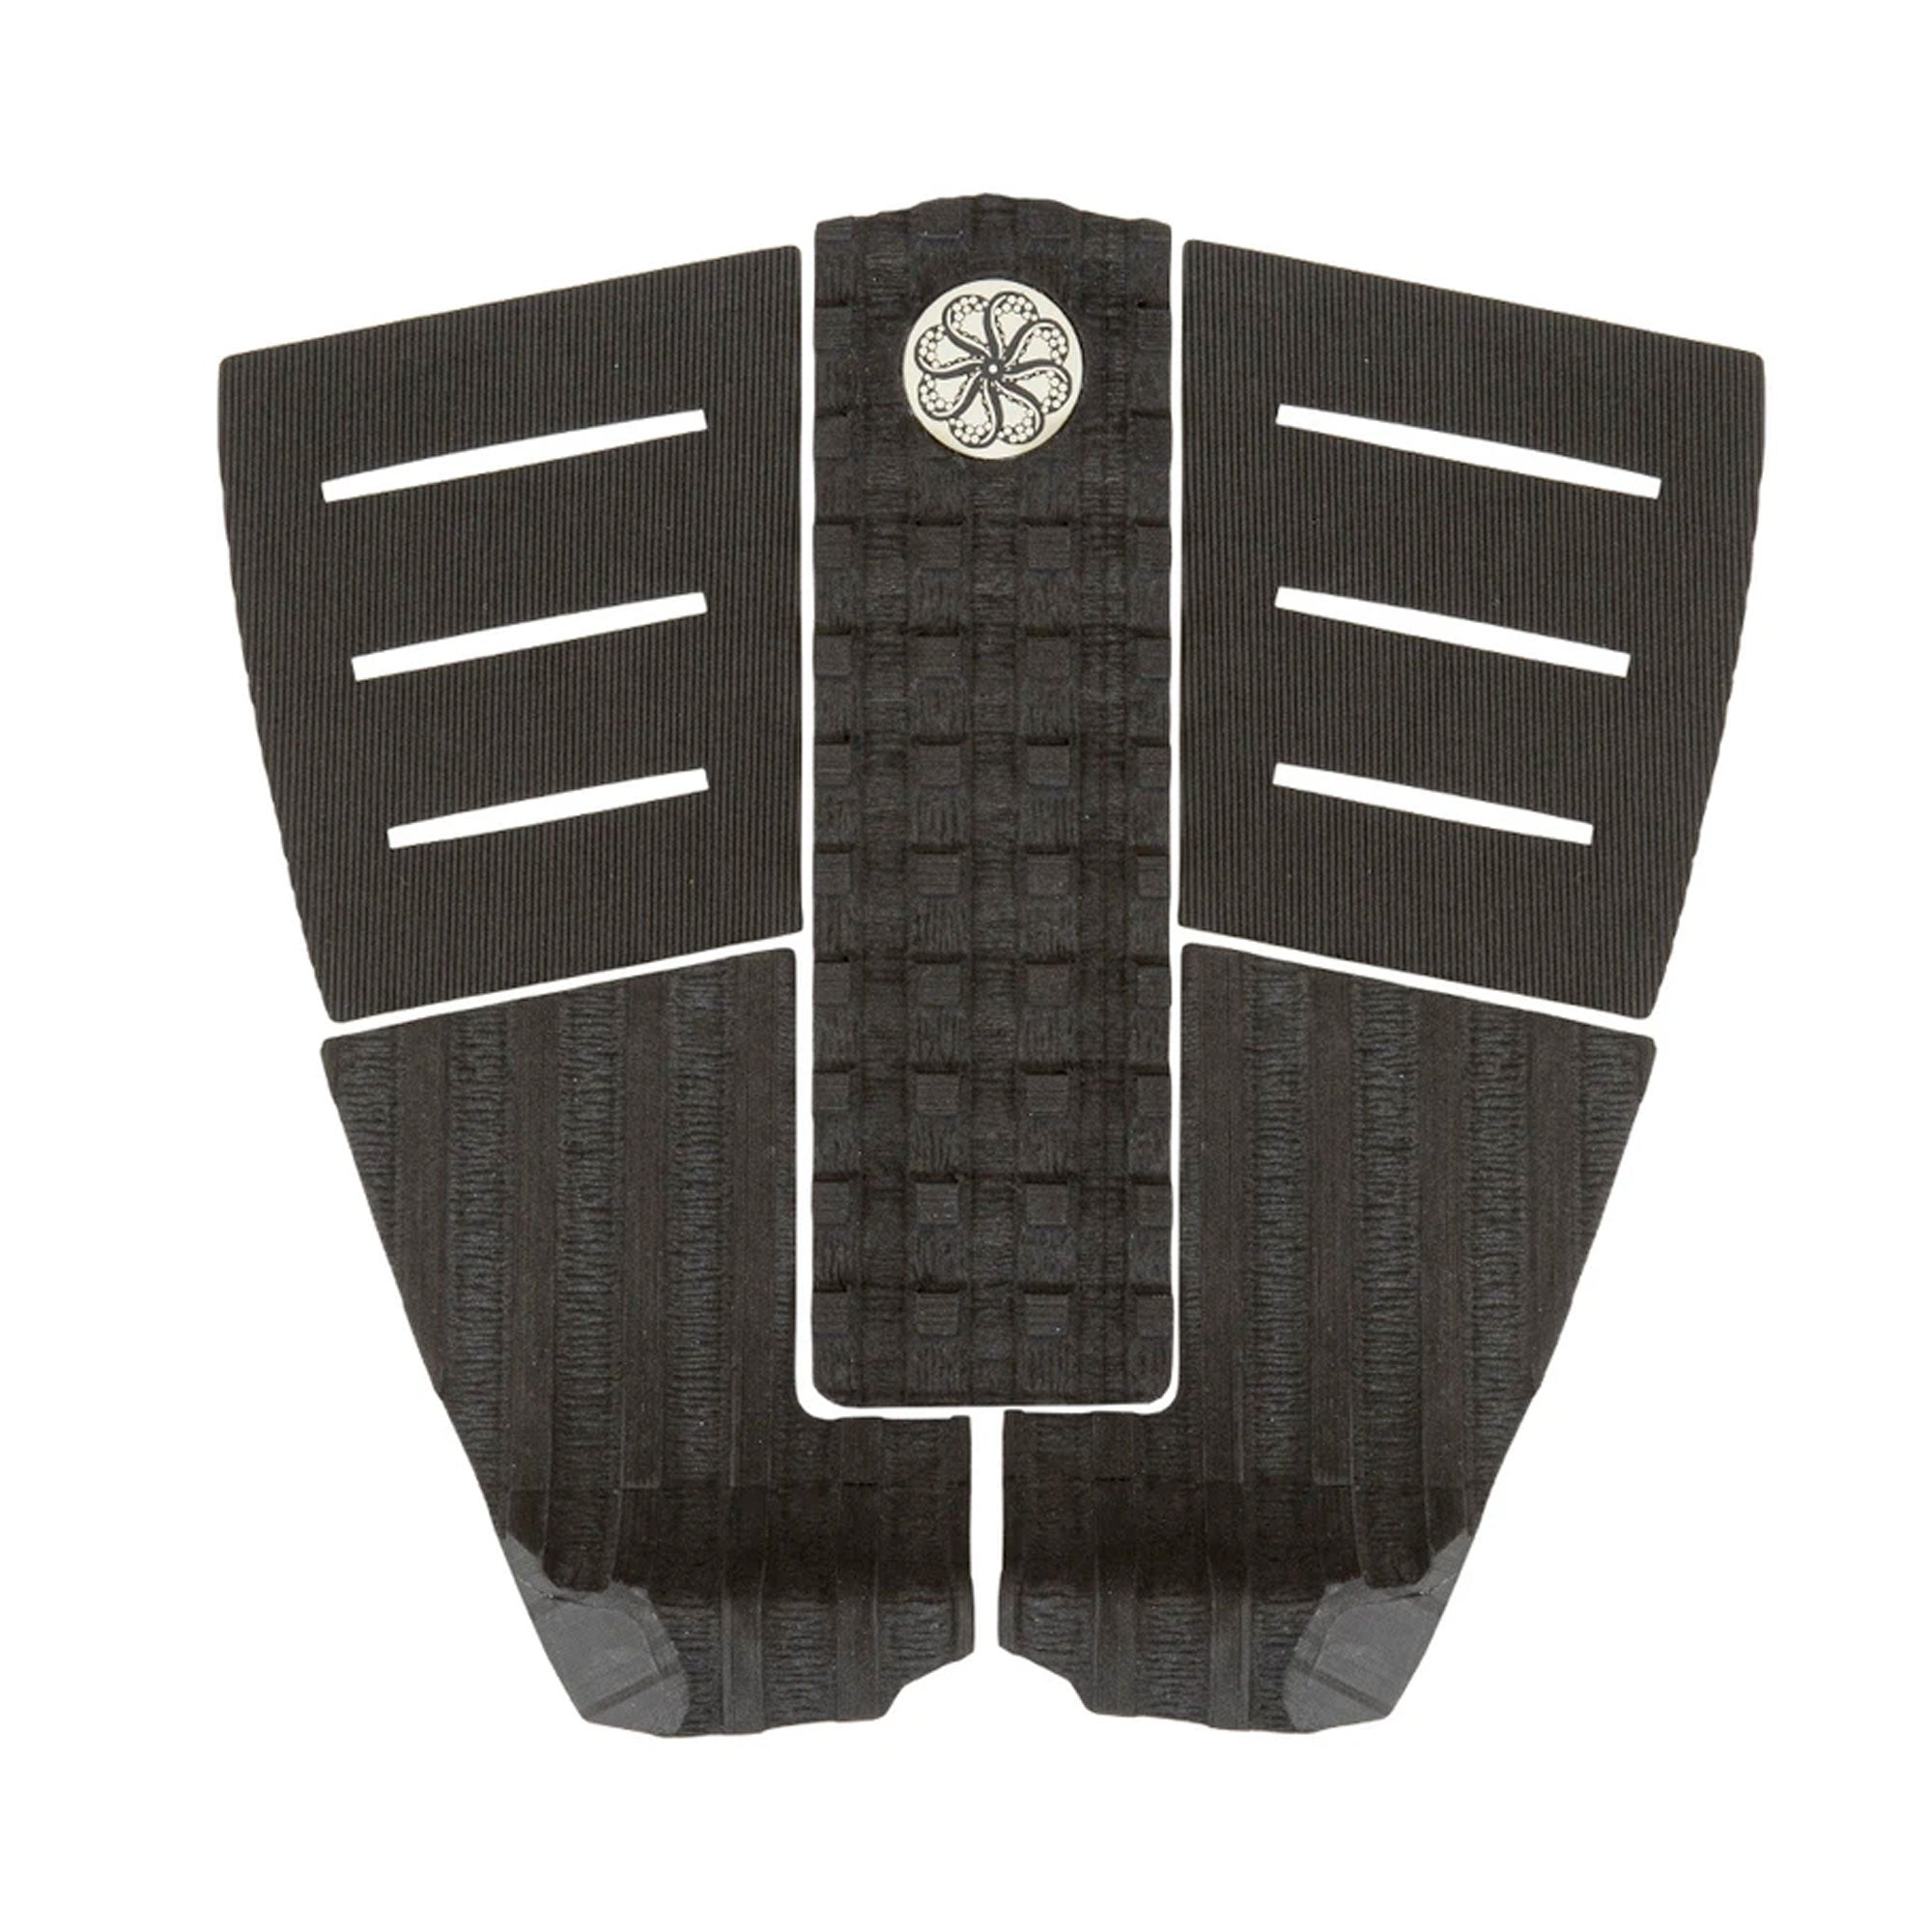 Octopus Dion Agius III Flat Traction Pad